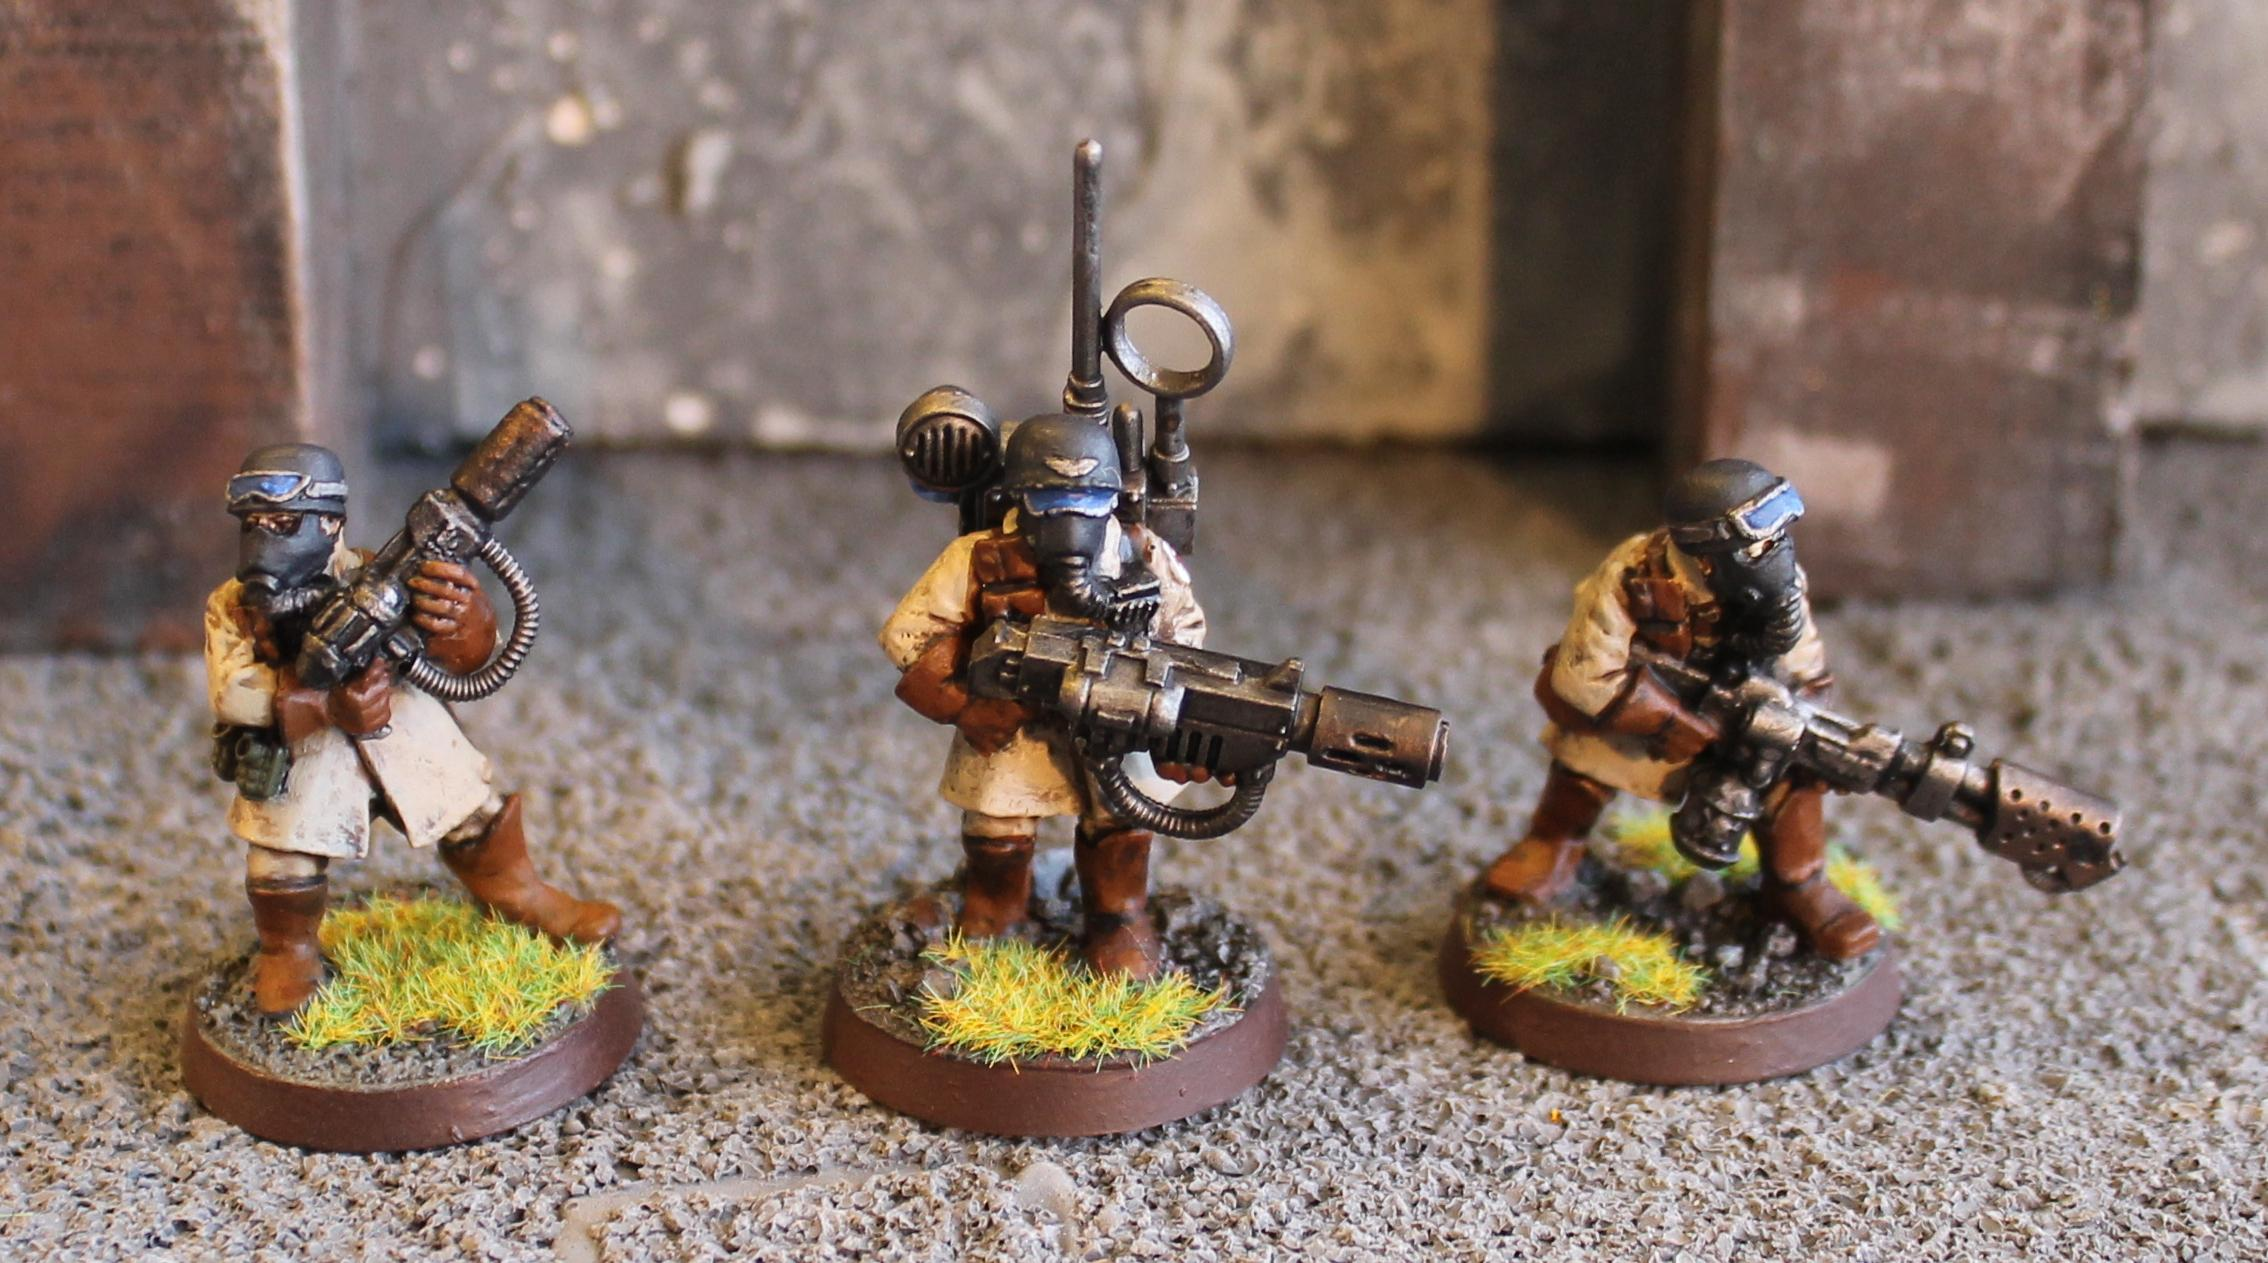 Astra Militarum, Conversion, Imperial Guard, Special Weapons, Steel Legion, Warhammer 40,000